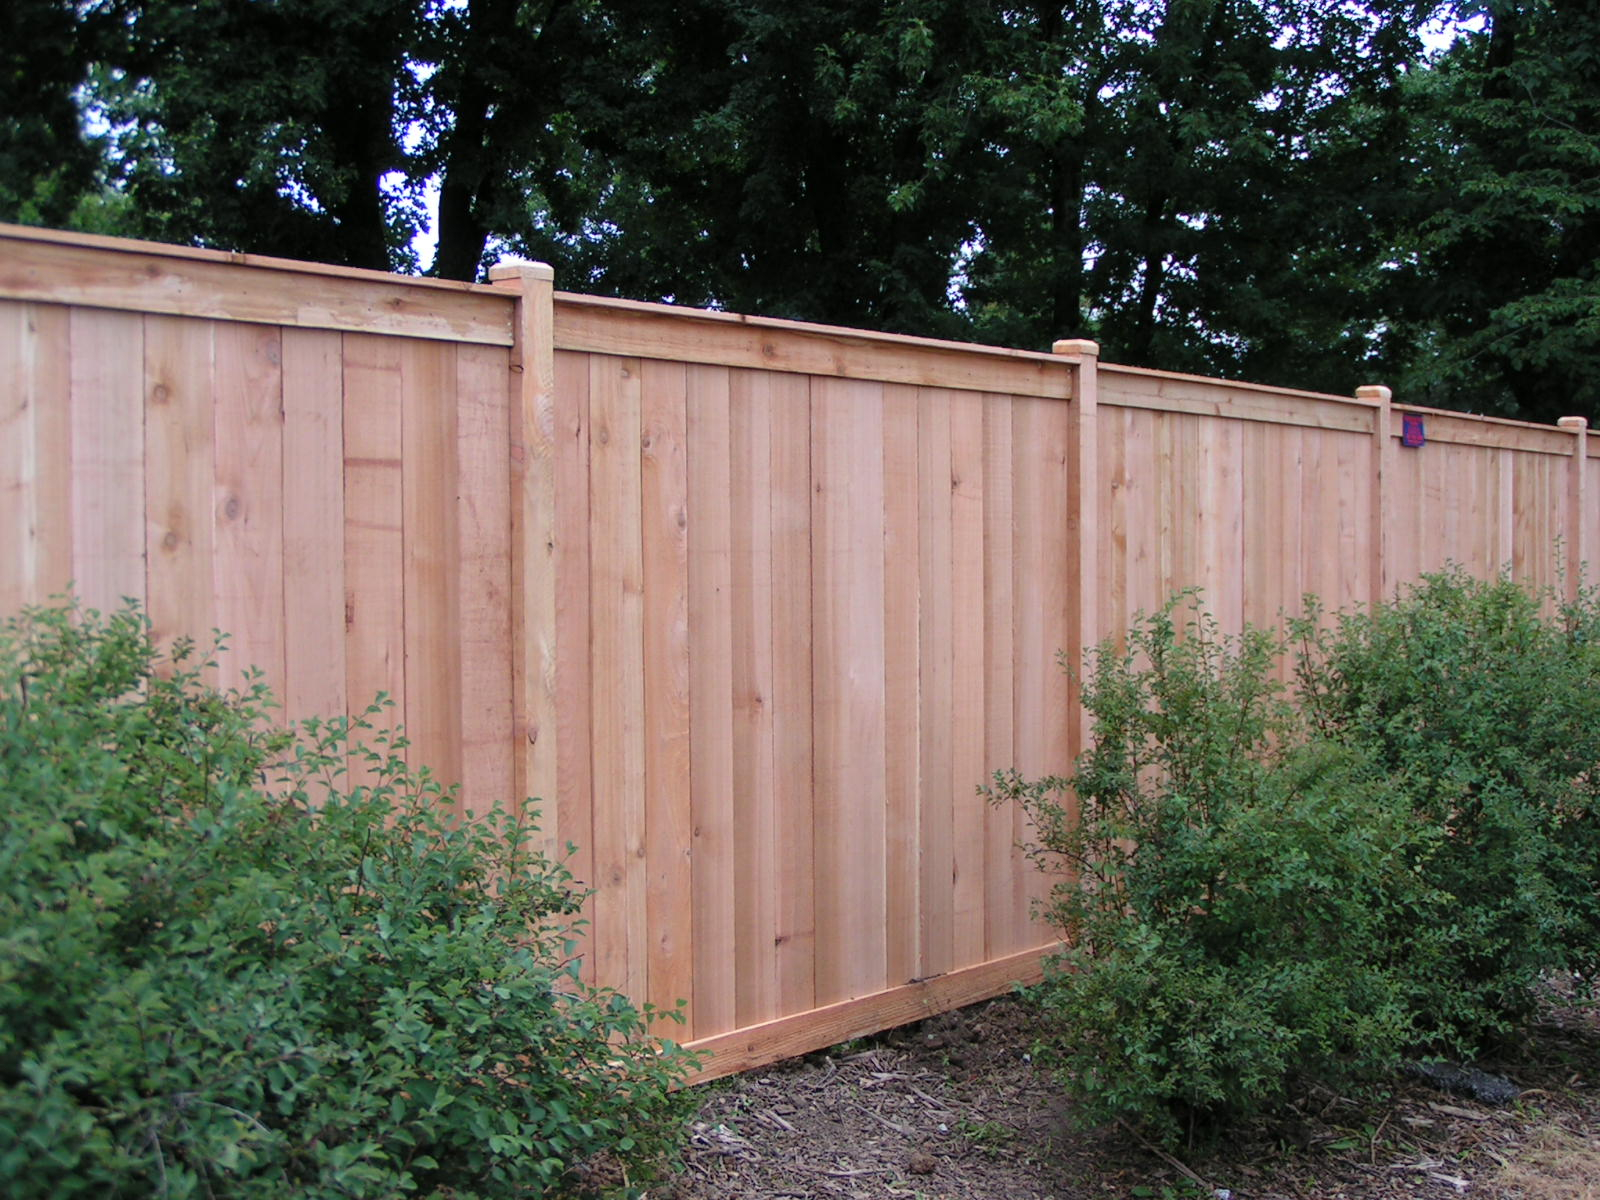 House Wood Fence Repair All Home Decor Attractive Wood in Backyard Fence Repair